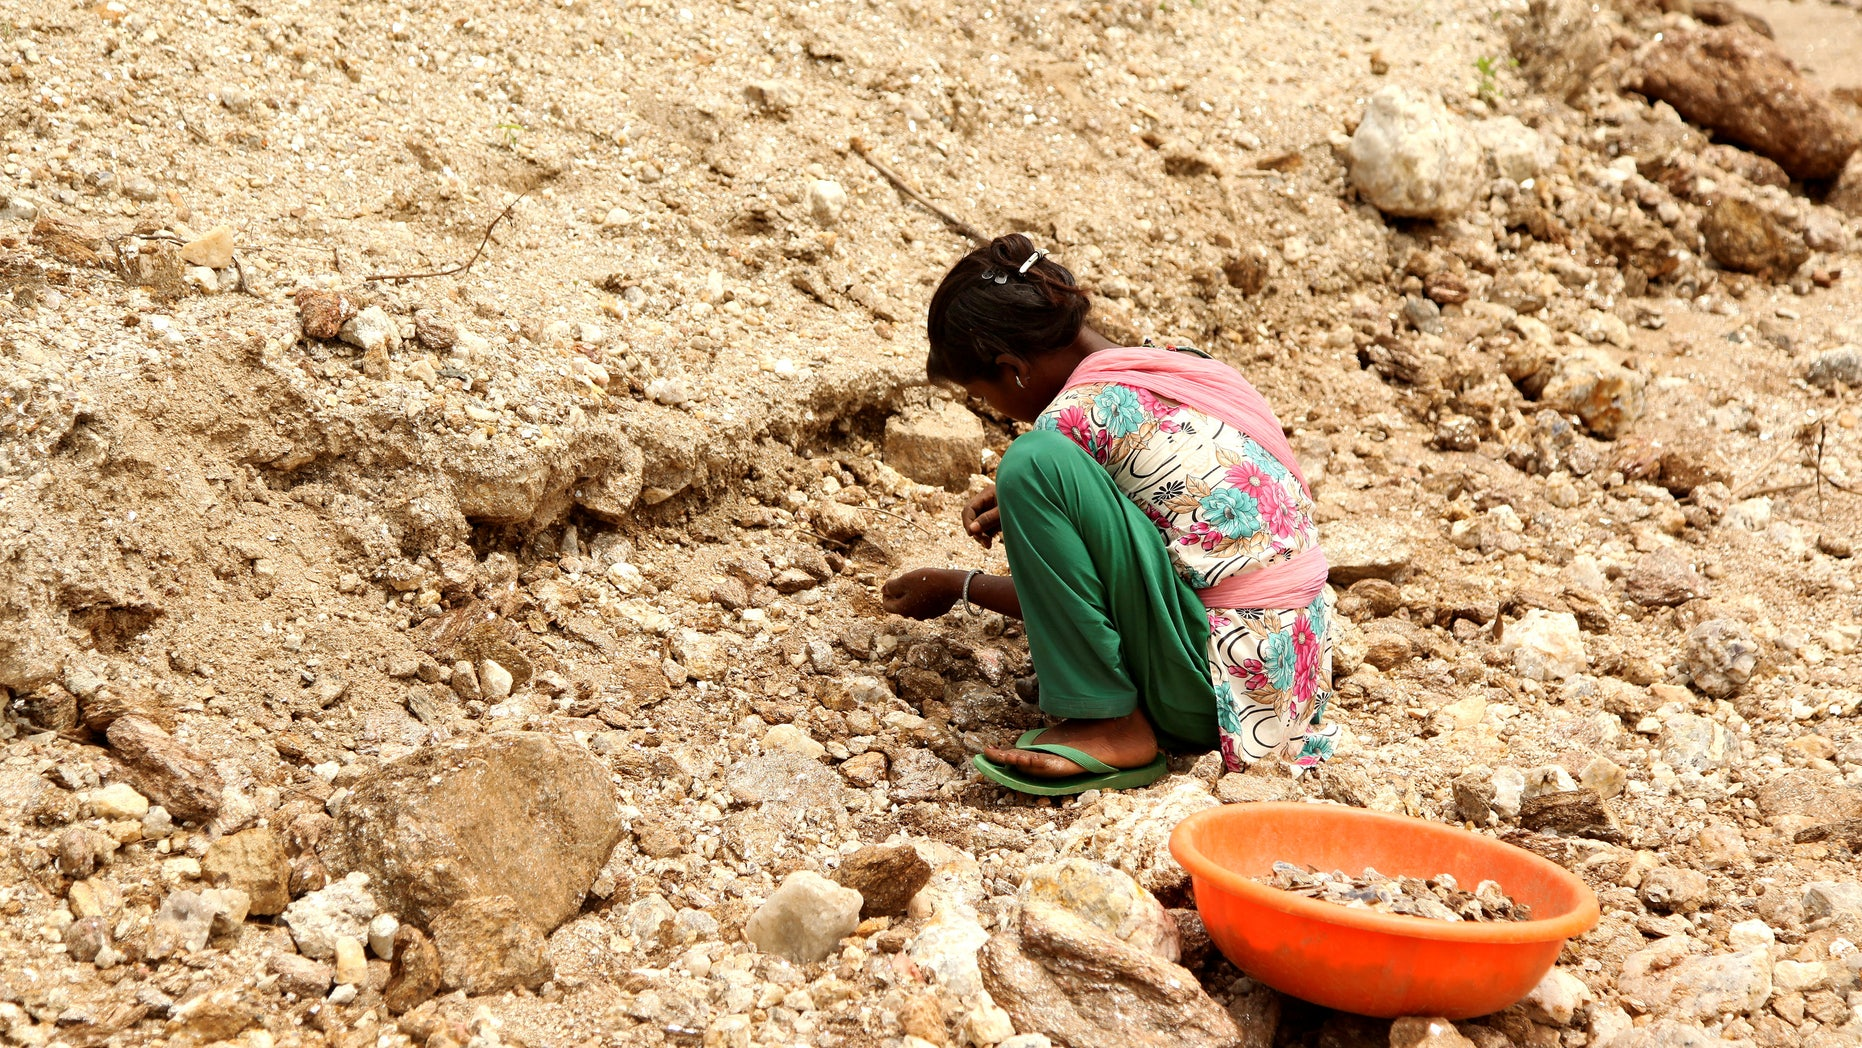 Gudiya, 13, breaks away pieces of mica from rocks in an illegal open cast mine in Koderma district in the eastern state of Jharkhand, India, June 29, 2016. Picture taken June 29, 2016. To match Thomson Reuters Foundation INDIA-MICA/CHILDREN REUTERS/Nita Bhalla - RTSKS2A